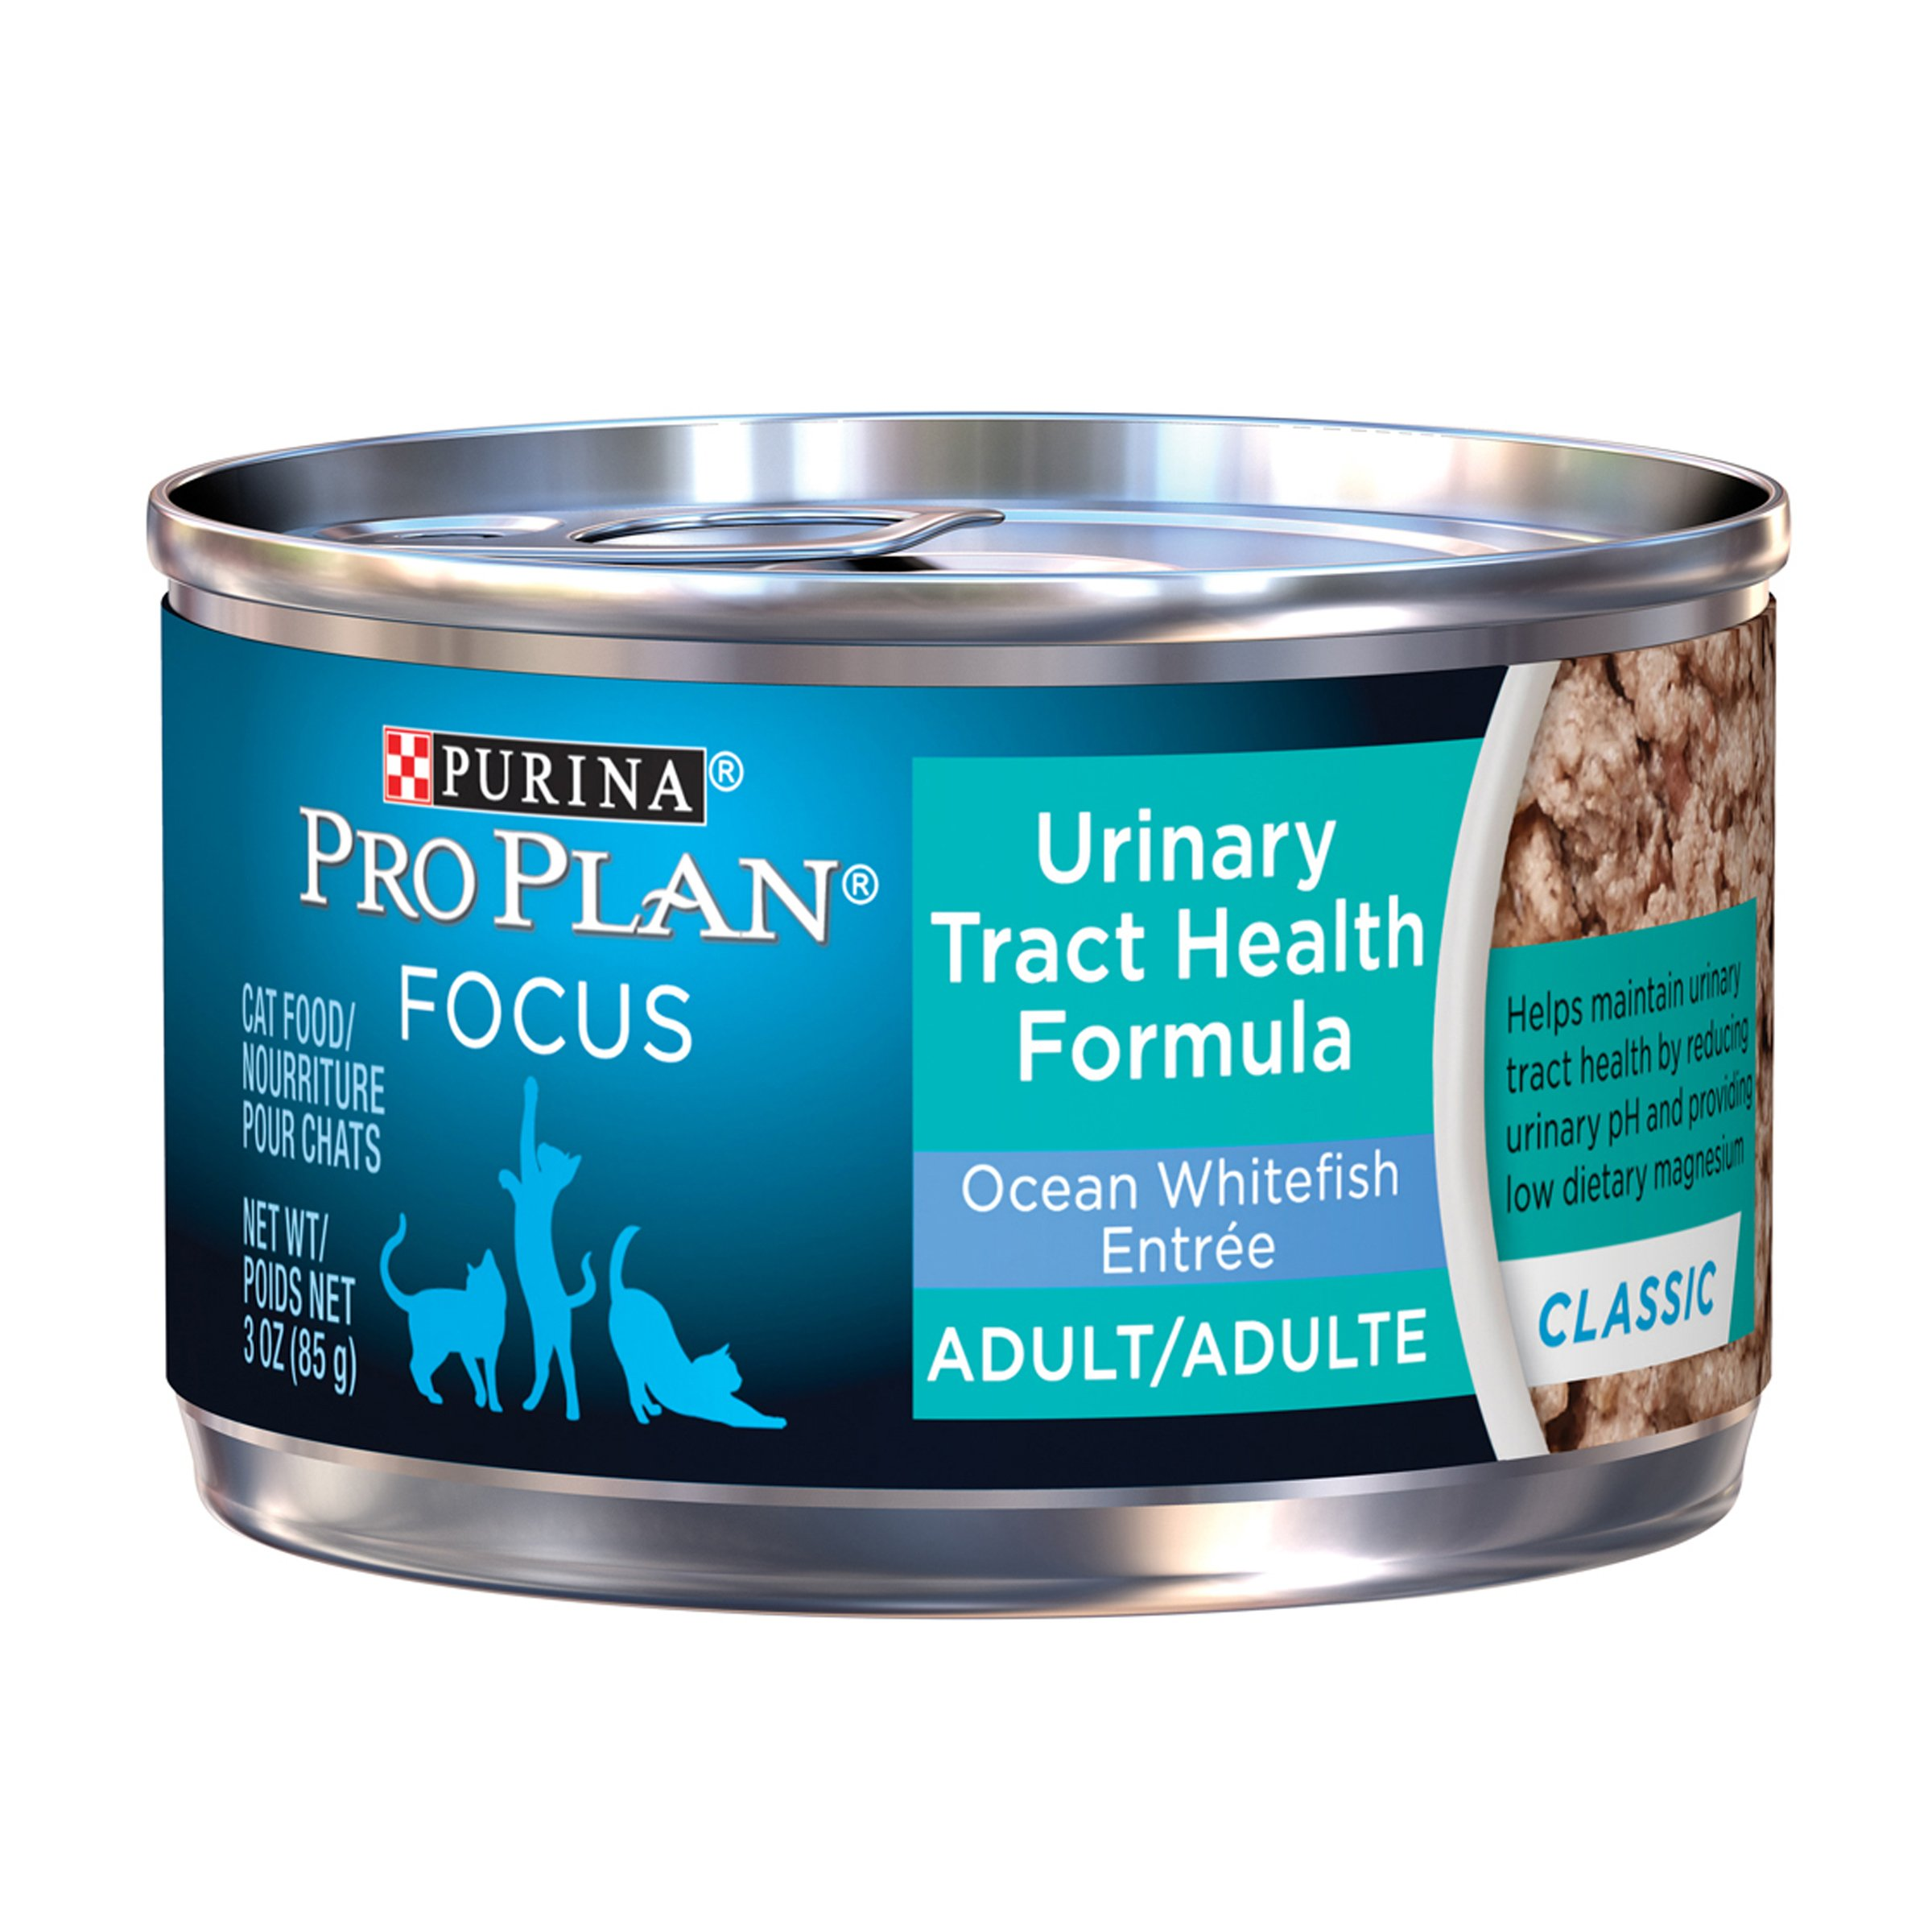 Purina Pro Plan Focus Adult Urinary Tract Health Formula Ocean Whitefish